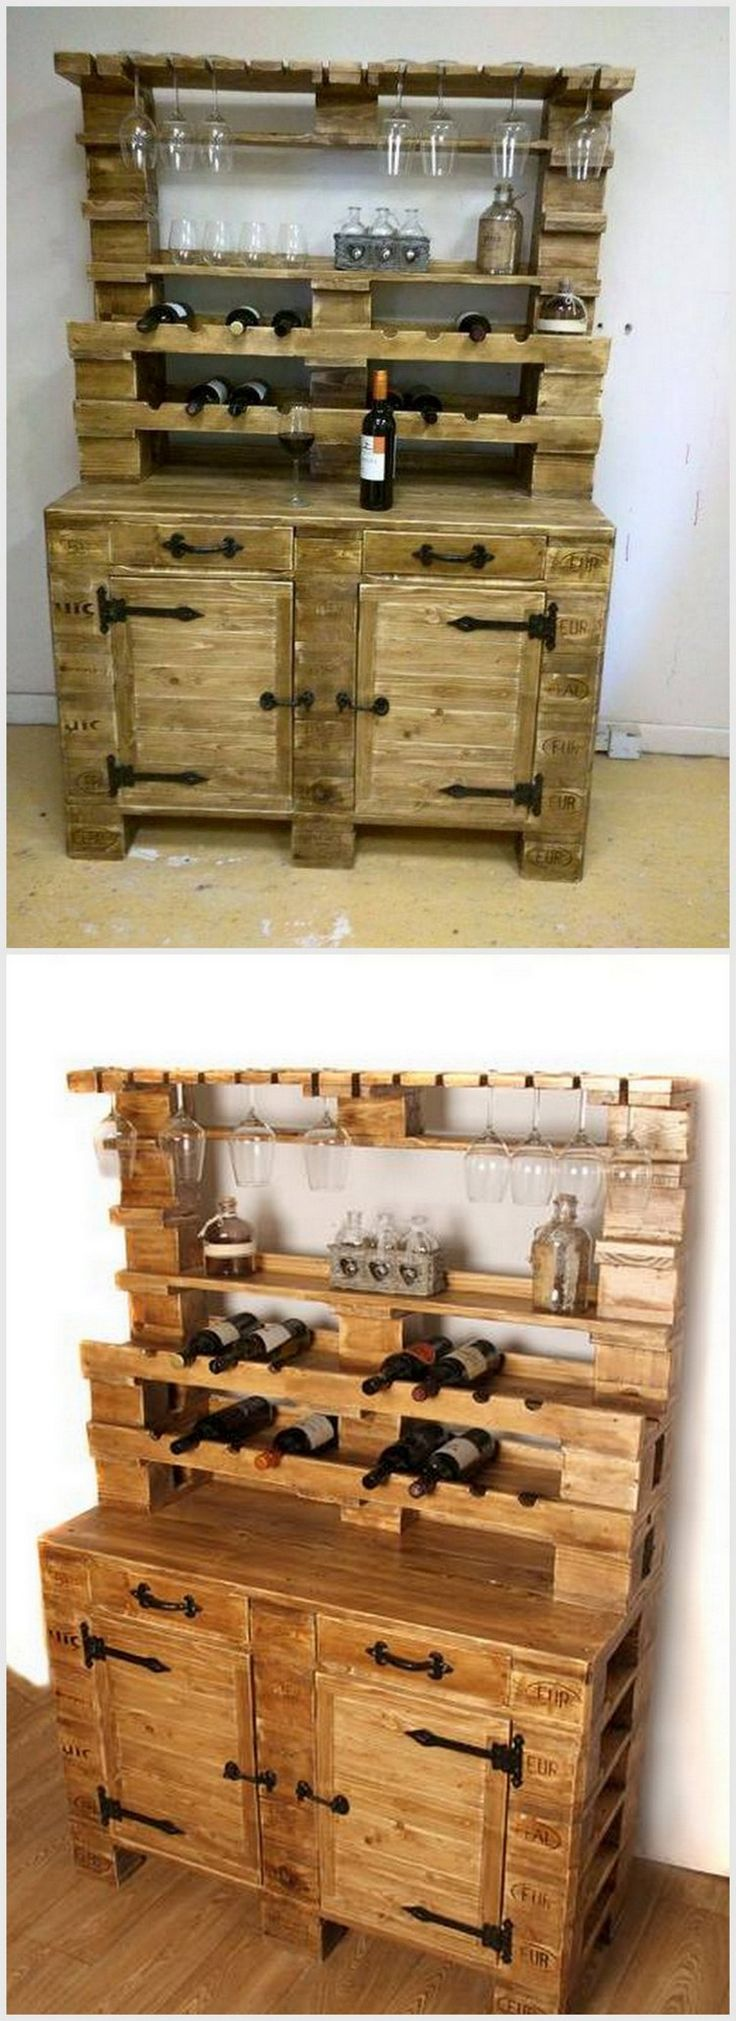 It is a very awesome pallet wood bar table in which you can put a significant number of pallet woods. If you love drinking a lot but do not know a way to store your bottles then it is for you. You can make it in any design but this design is quite spacious.